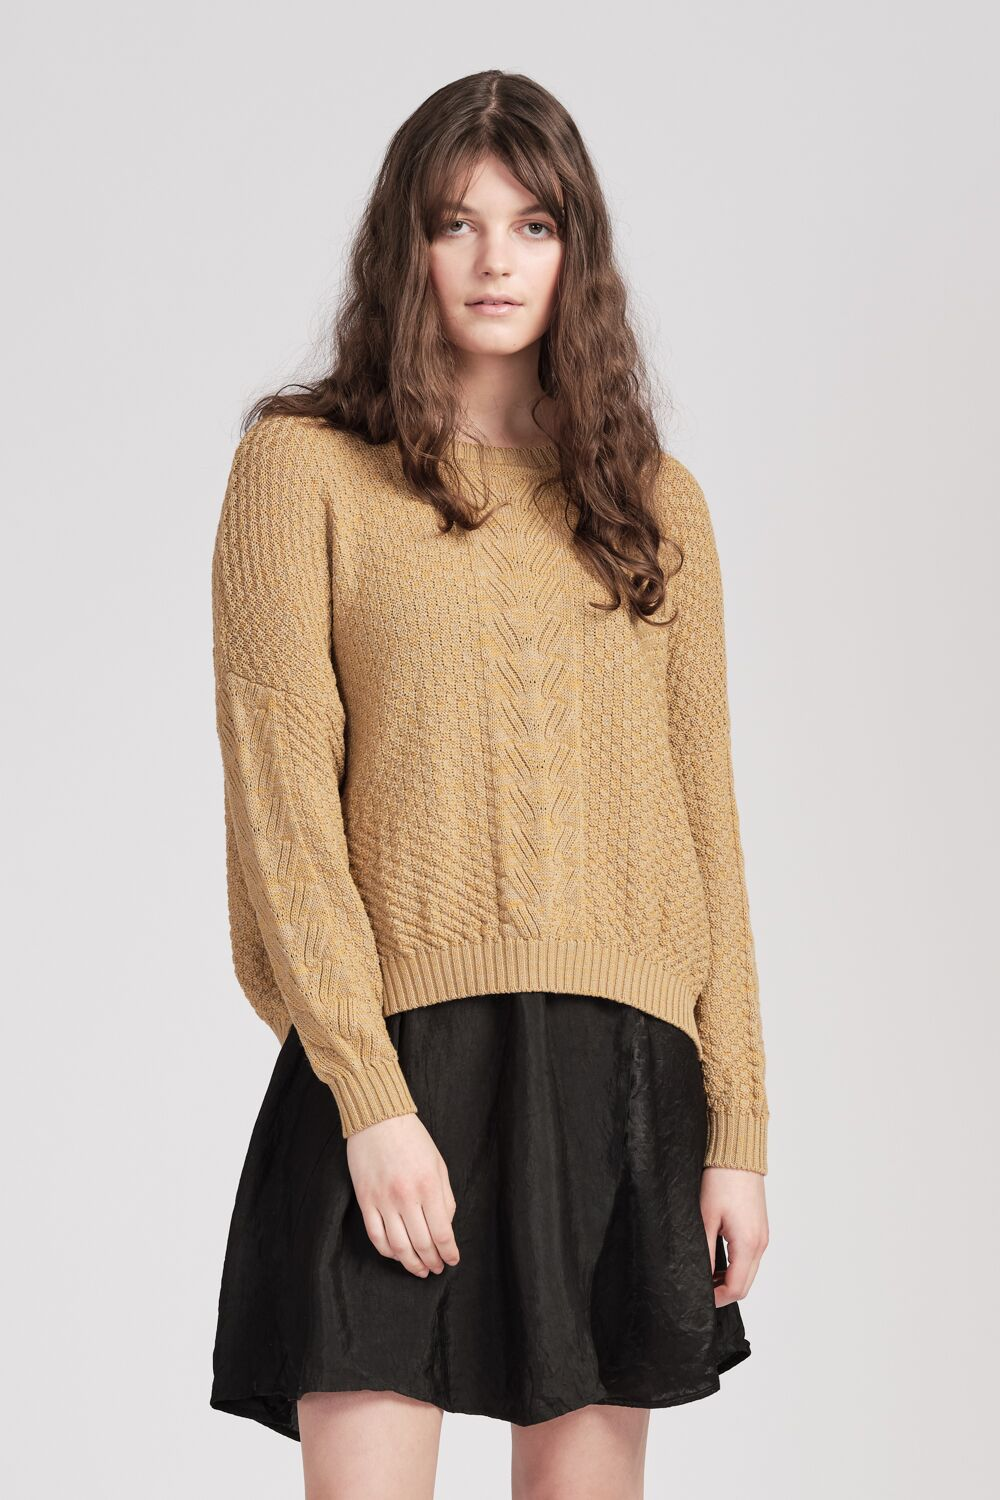 Willoughby Jumper - Oatmeal/Honey